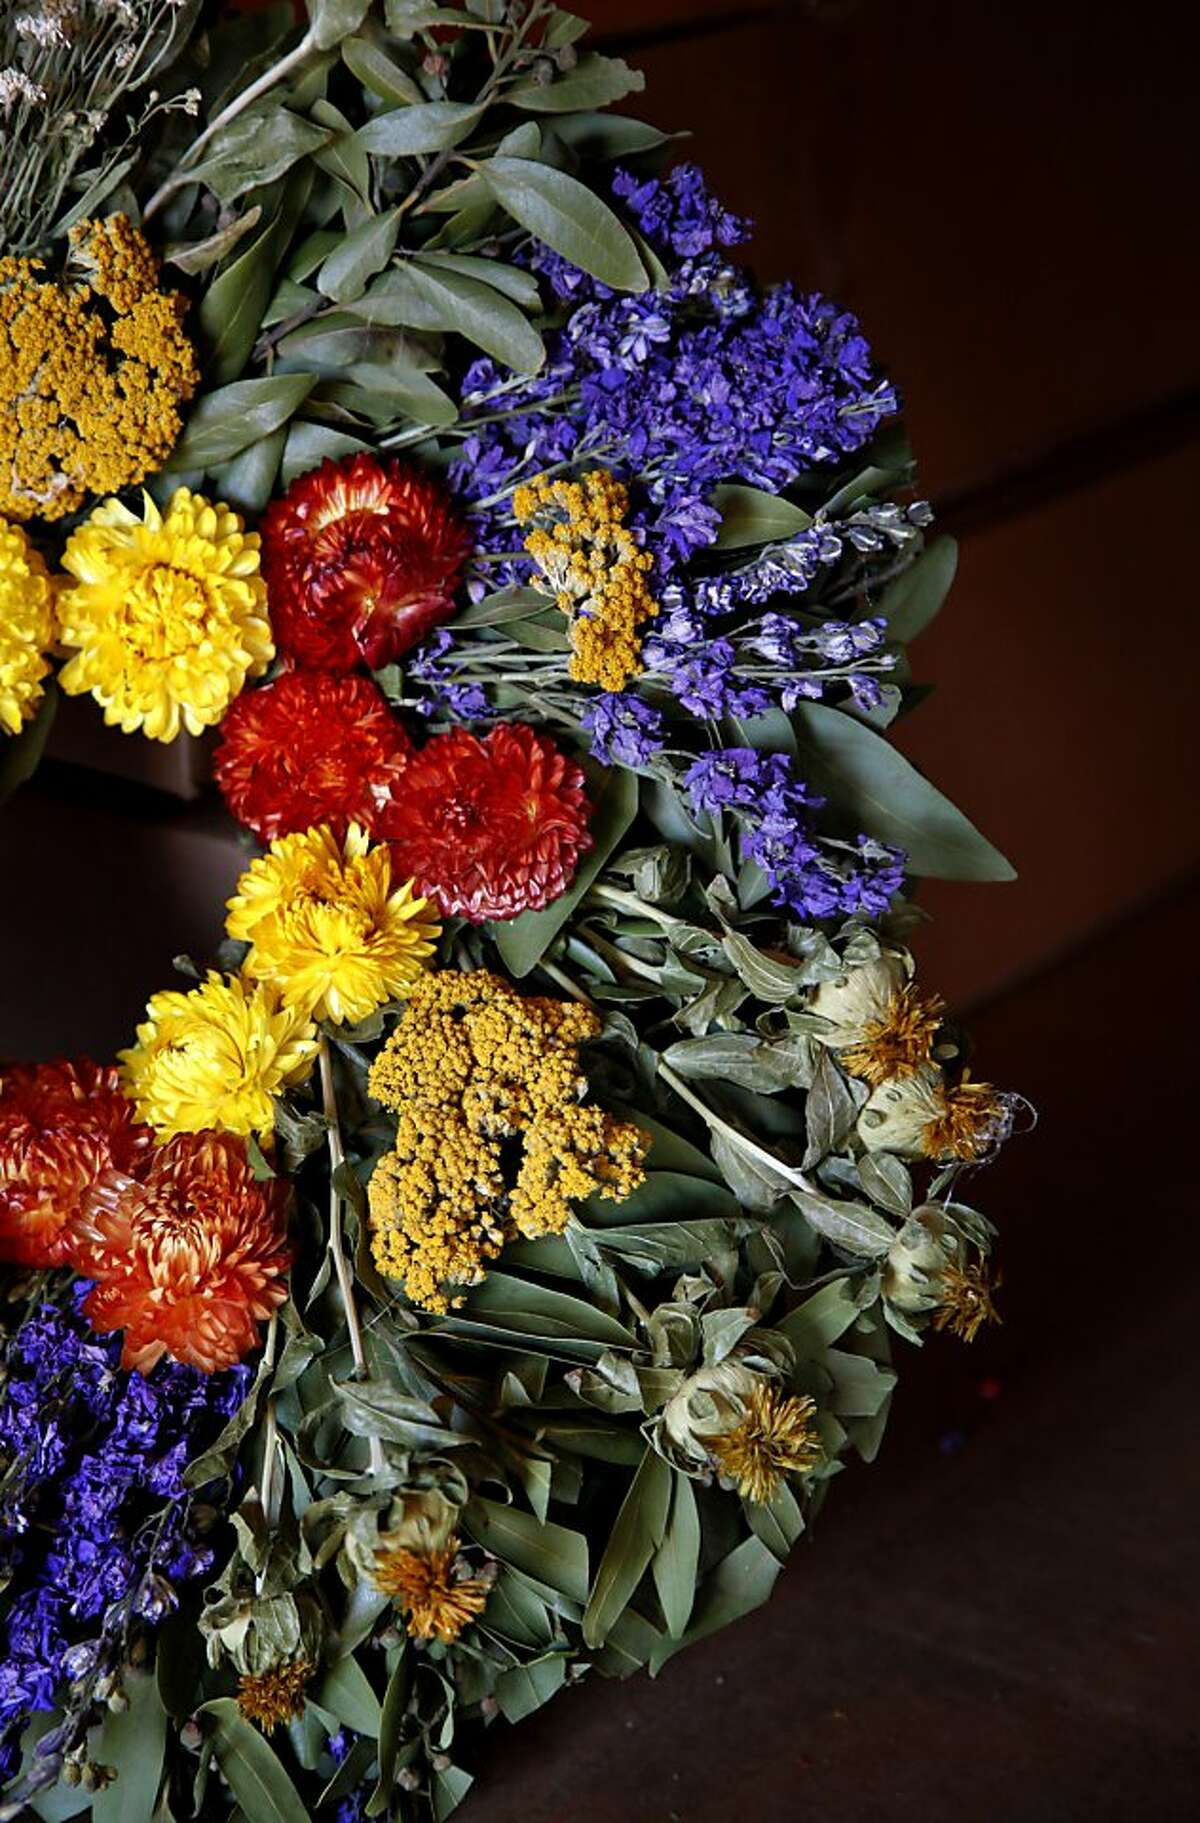 The Tuscan wreath, among items available at Bassetti Vineyards, is made of bay leaves, dried flowers.